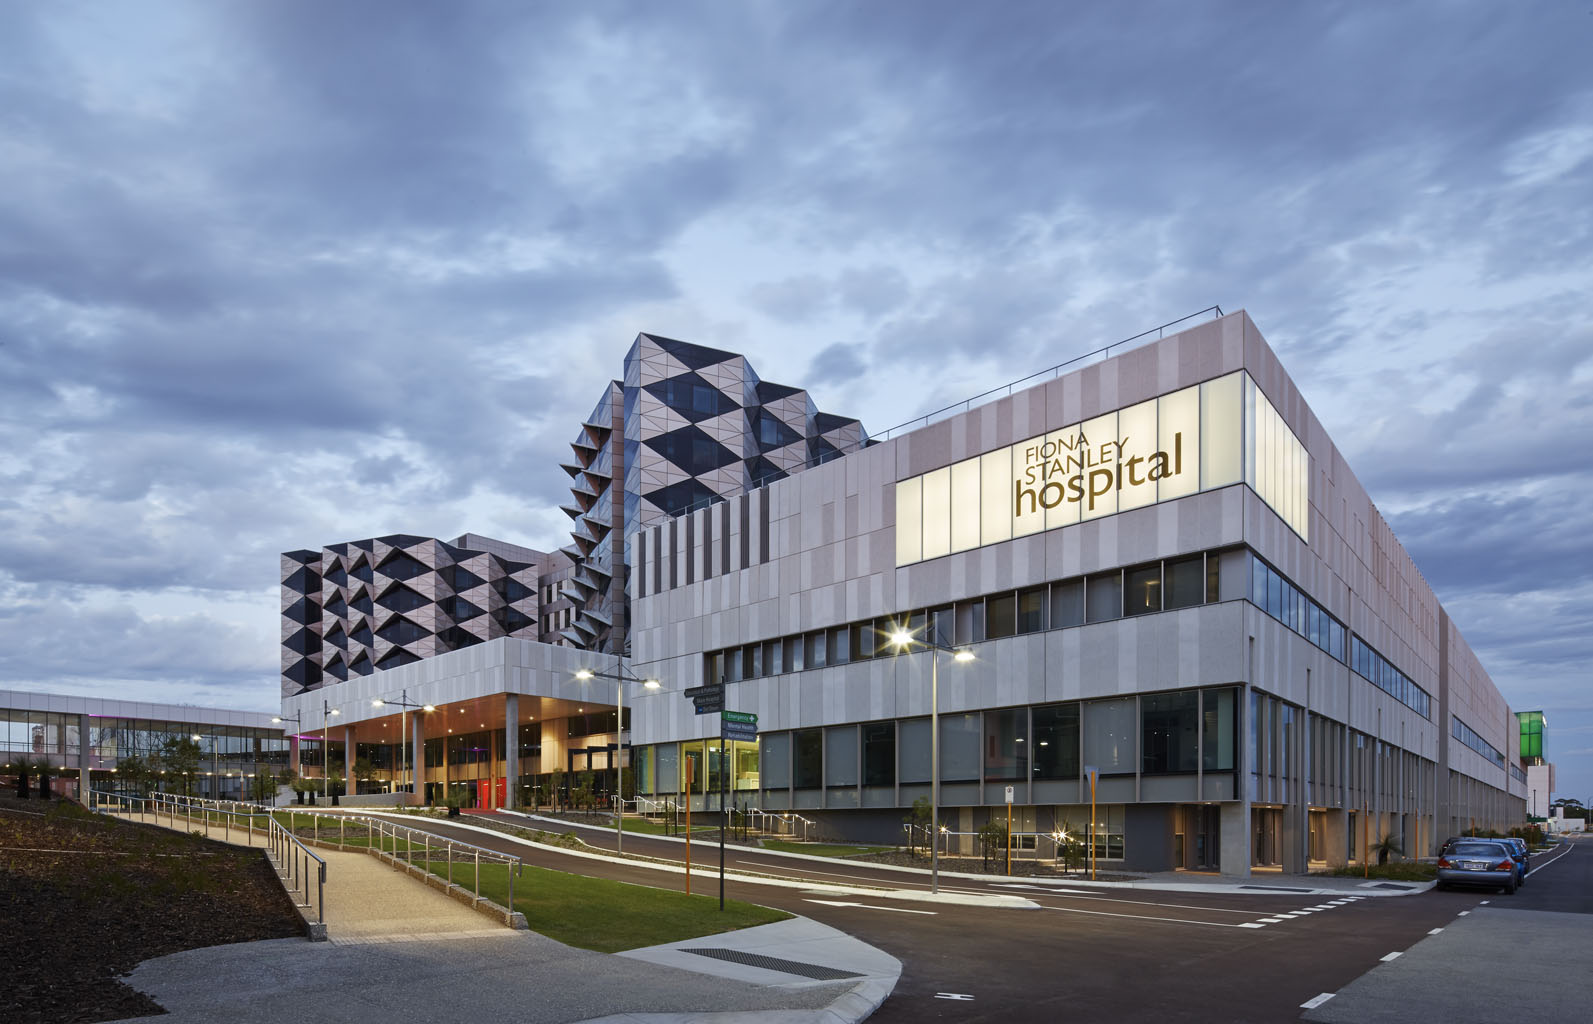 Fiona Stanley Hospital Opening in October